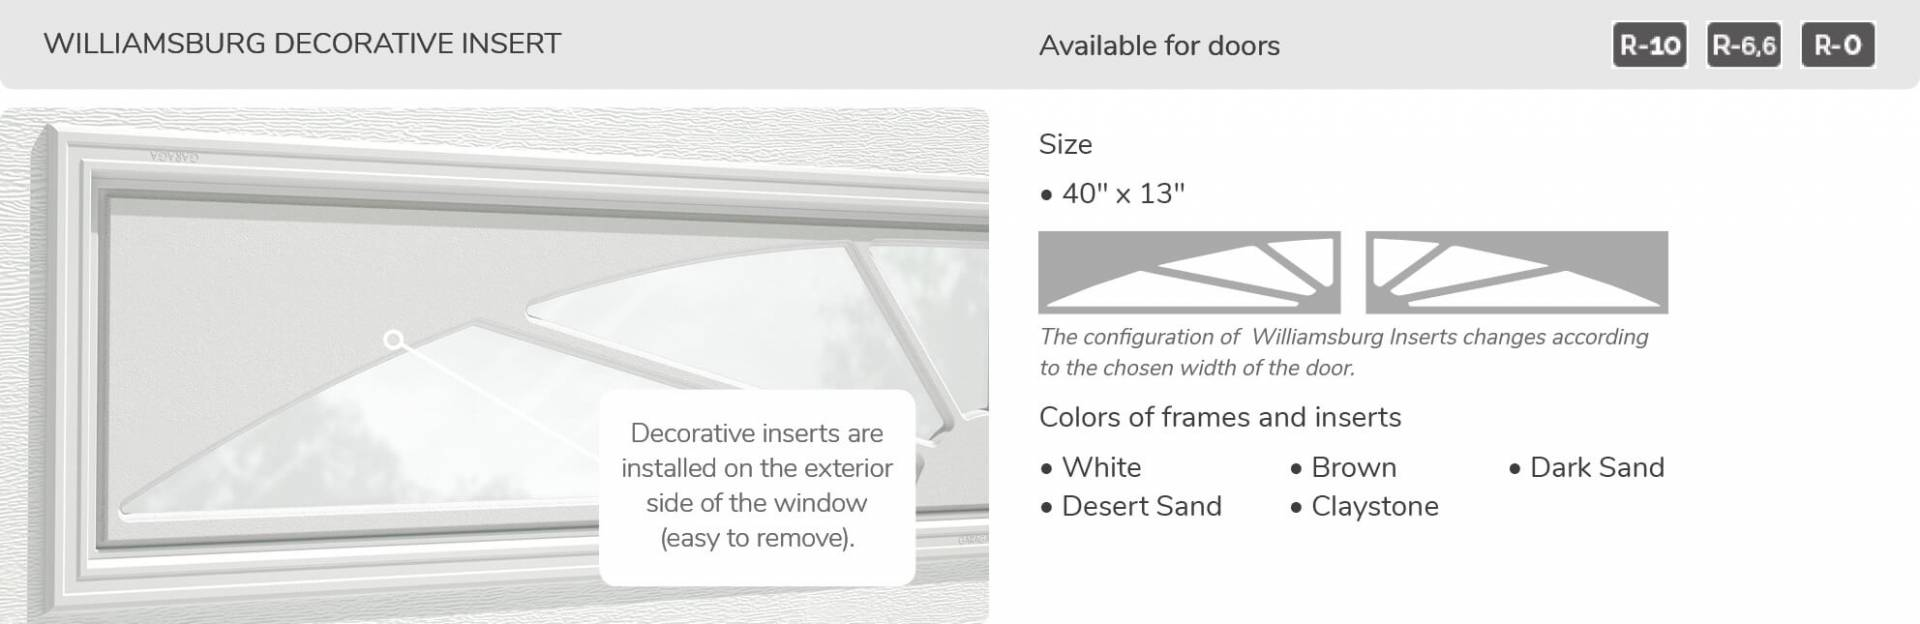 Eastman E-11, 10' x 7', Desert Sand door and overlays, 8 lite Panoramic windows